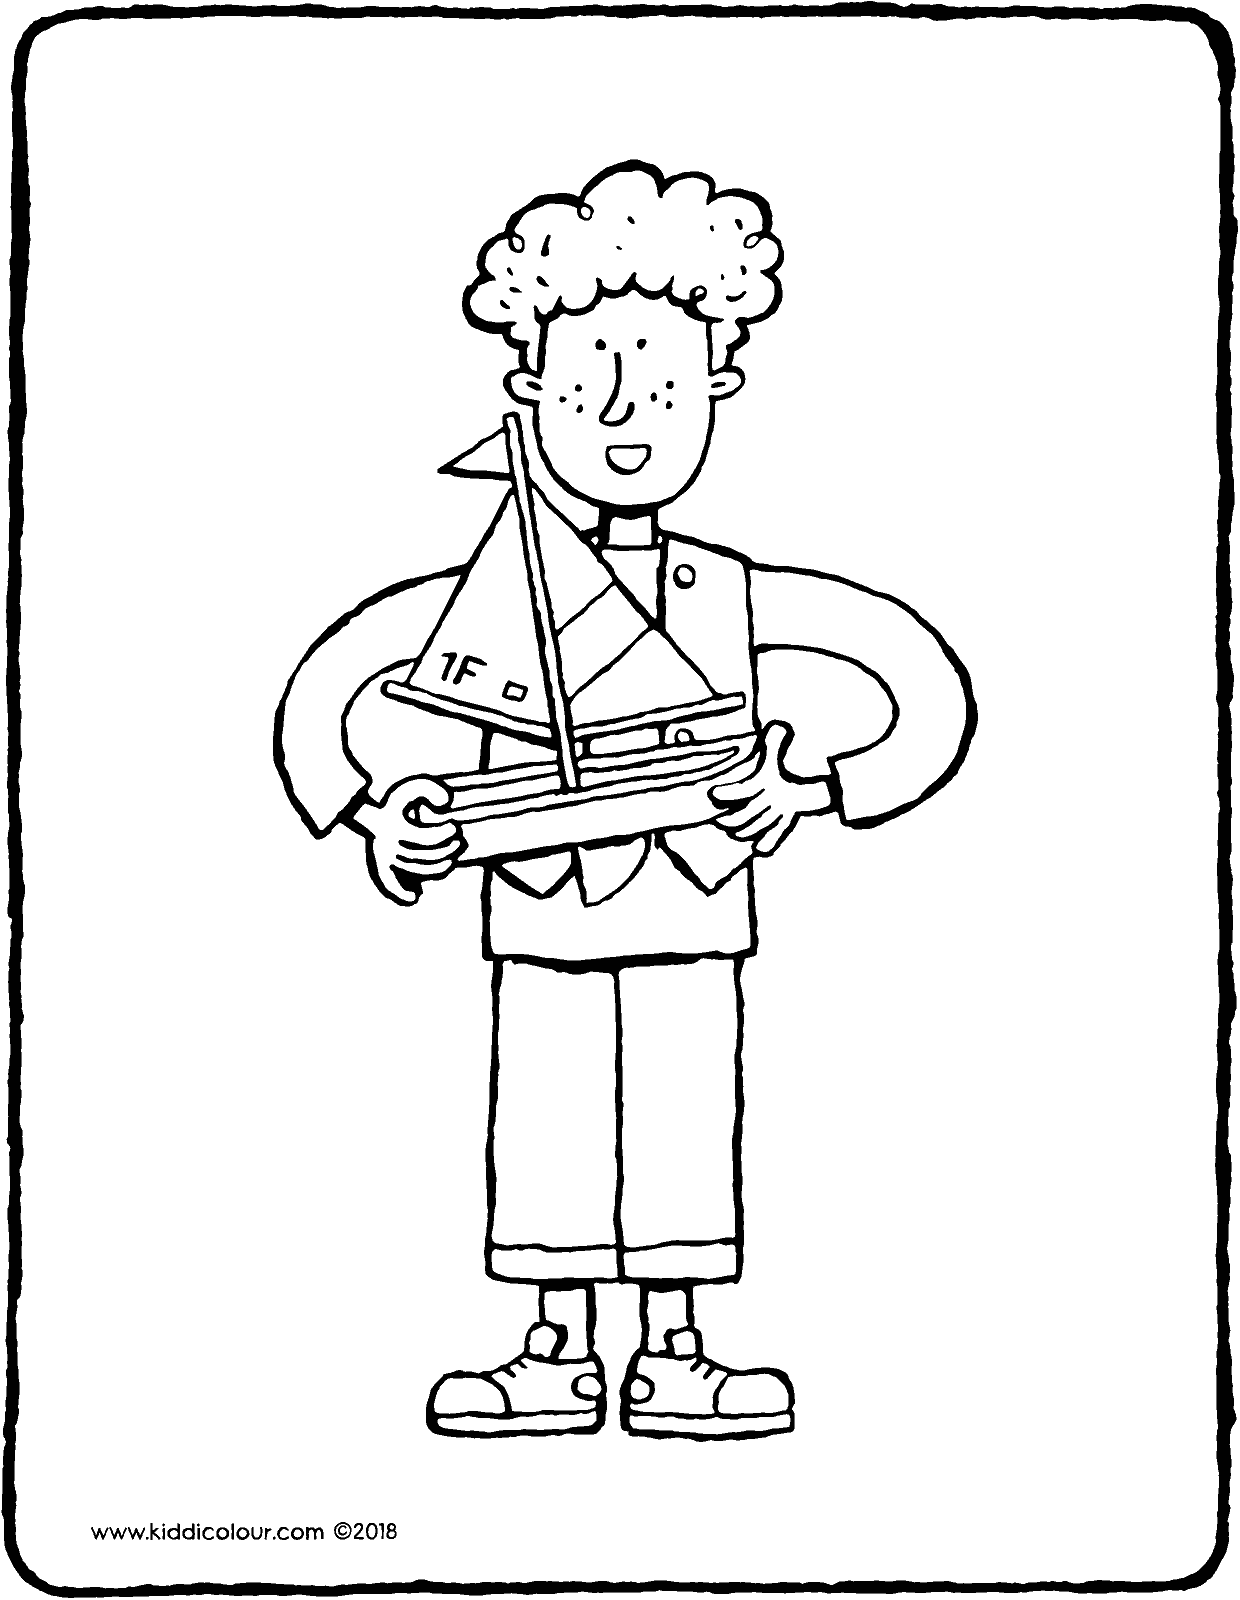 Luke and his boat colouring page drawing picture 01V